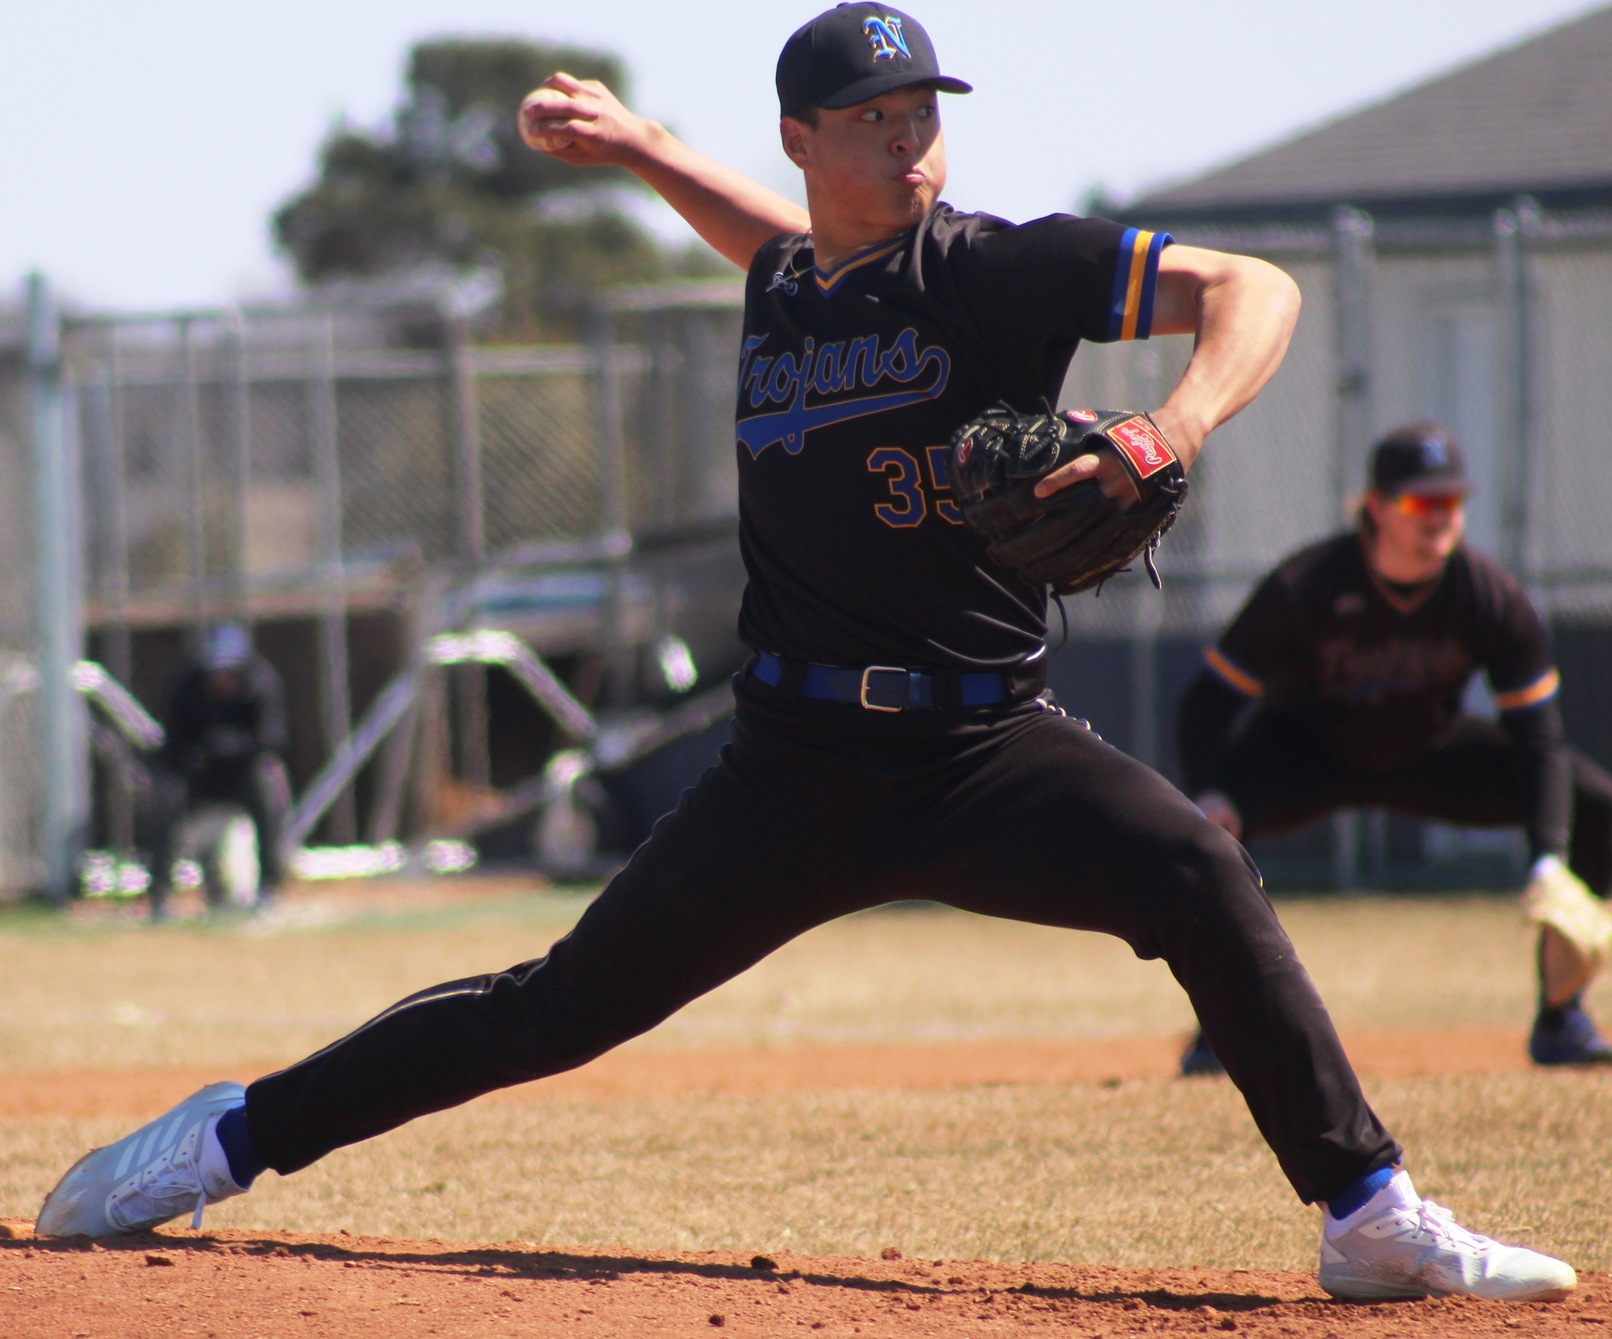 NIACC's Michael Oh delivers a pitch in Sunday's first game.